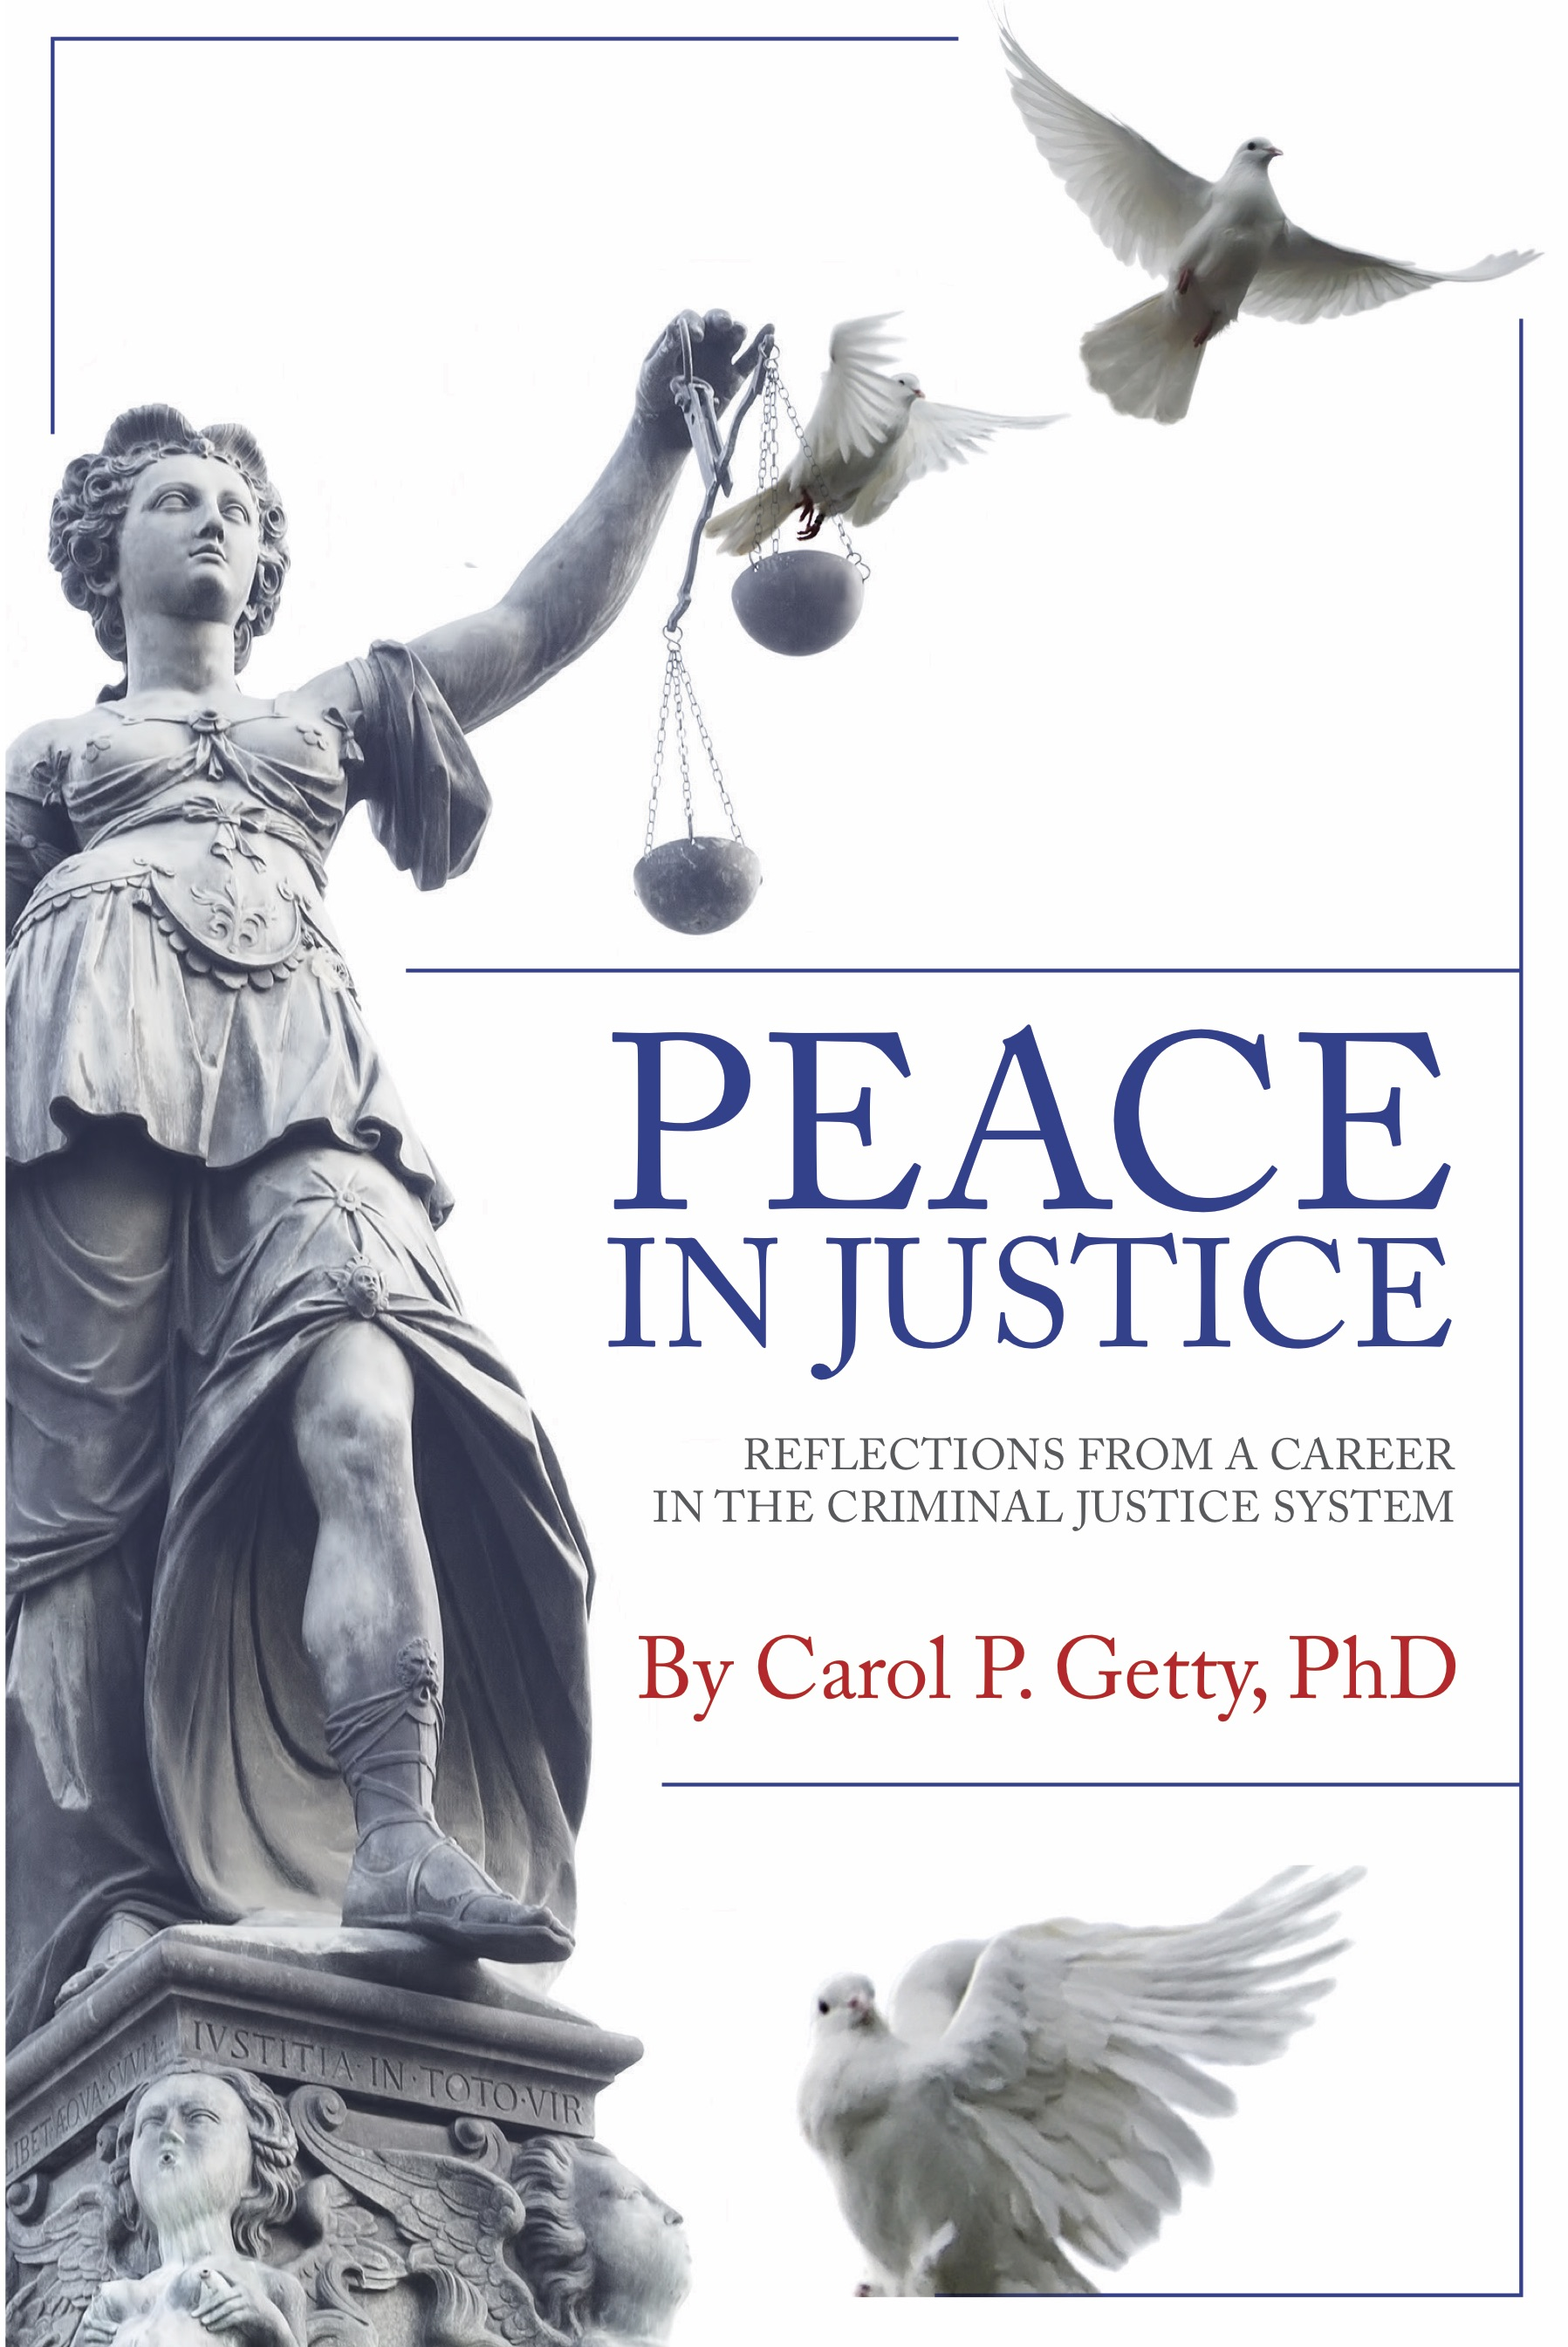 - One part memoir and one part essay, Peace in Justice offers an insightful analysis of the American criminal justice system by someone who spent decades working in the state and federal systems. Carol Getty's illustrative career took her from the Arizona Board of Pardons and Paroles to the highest office of the United States Parole Commission.More about the bookBuy the book on Amazon